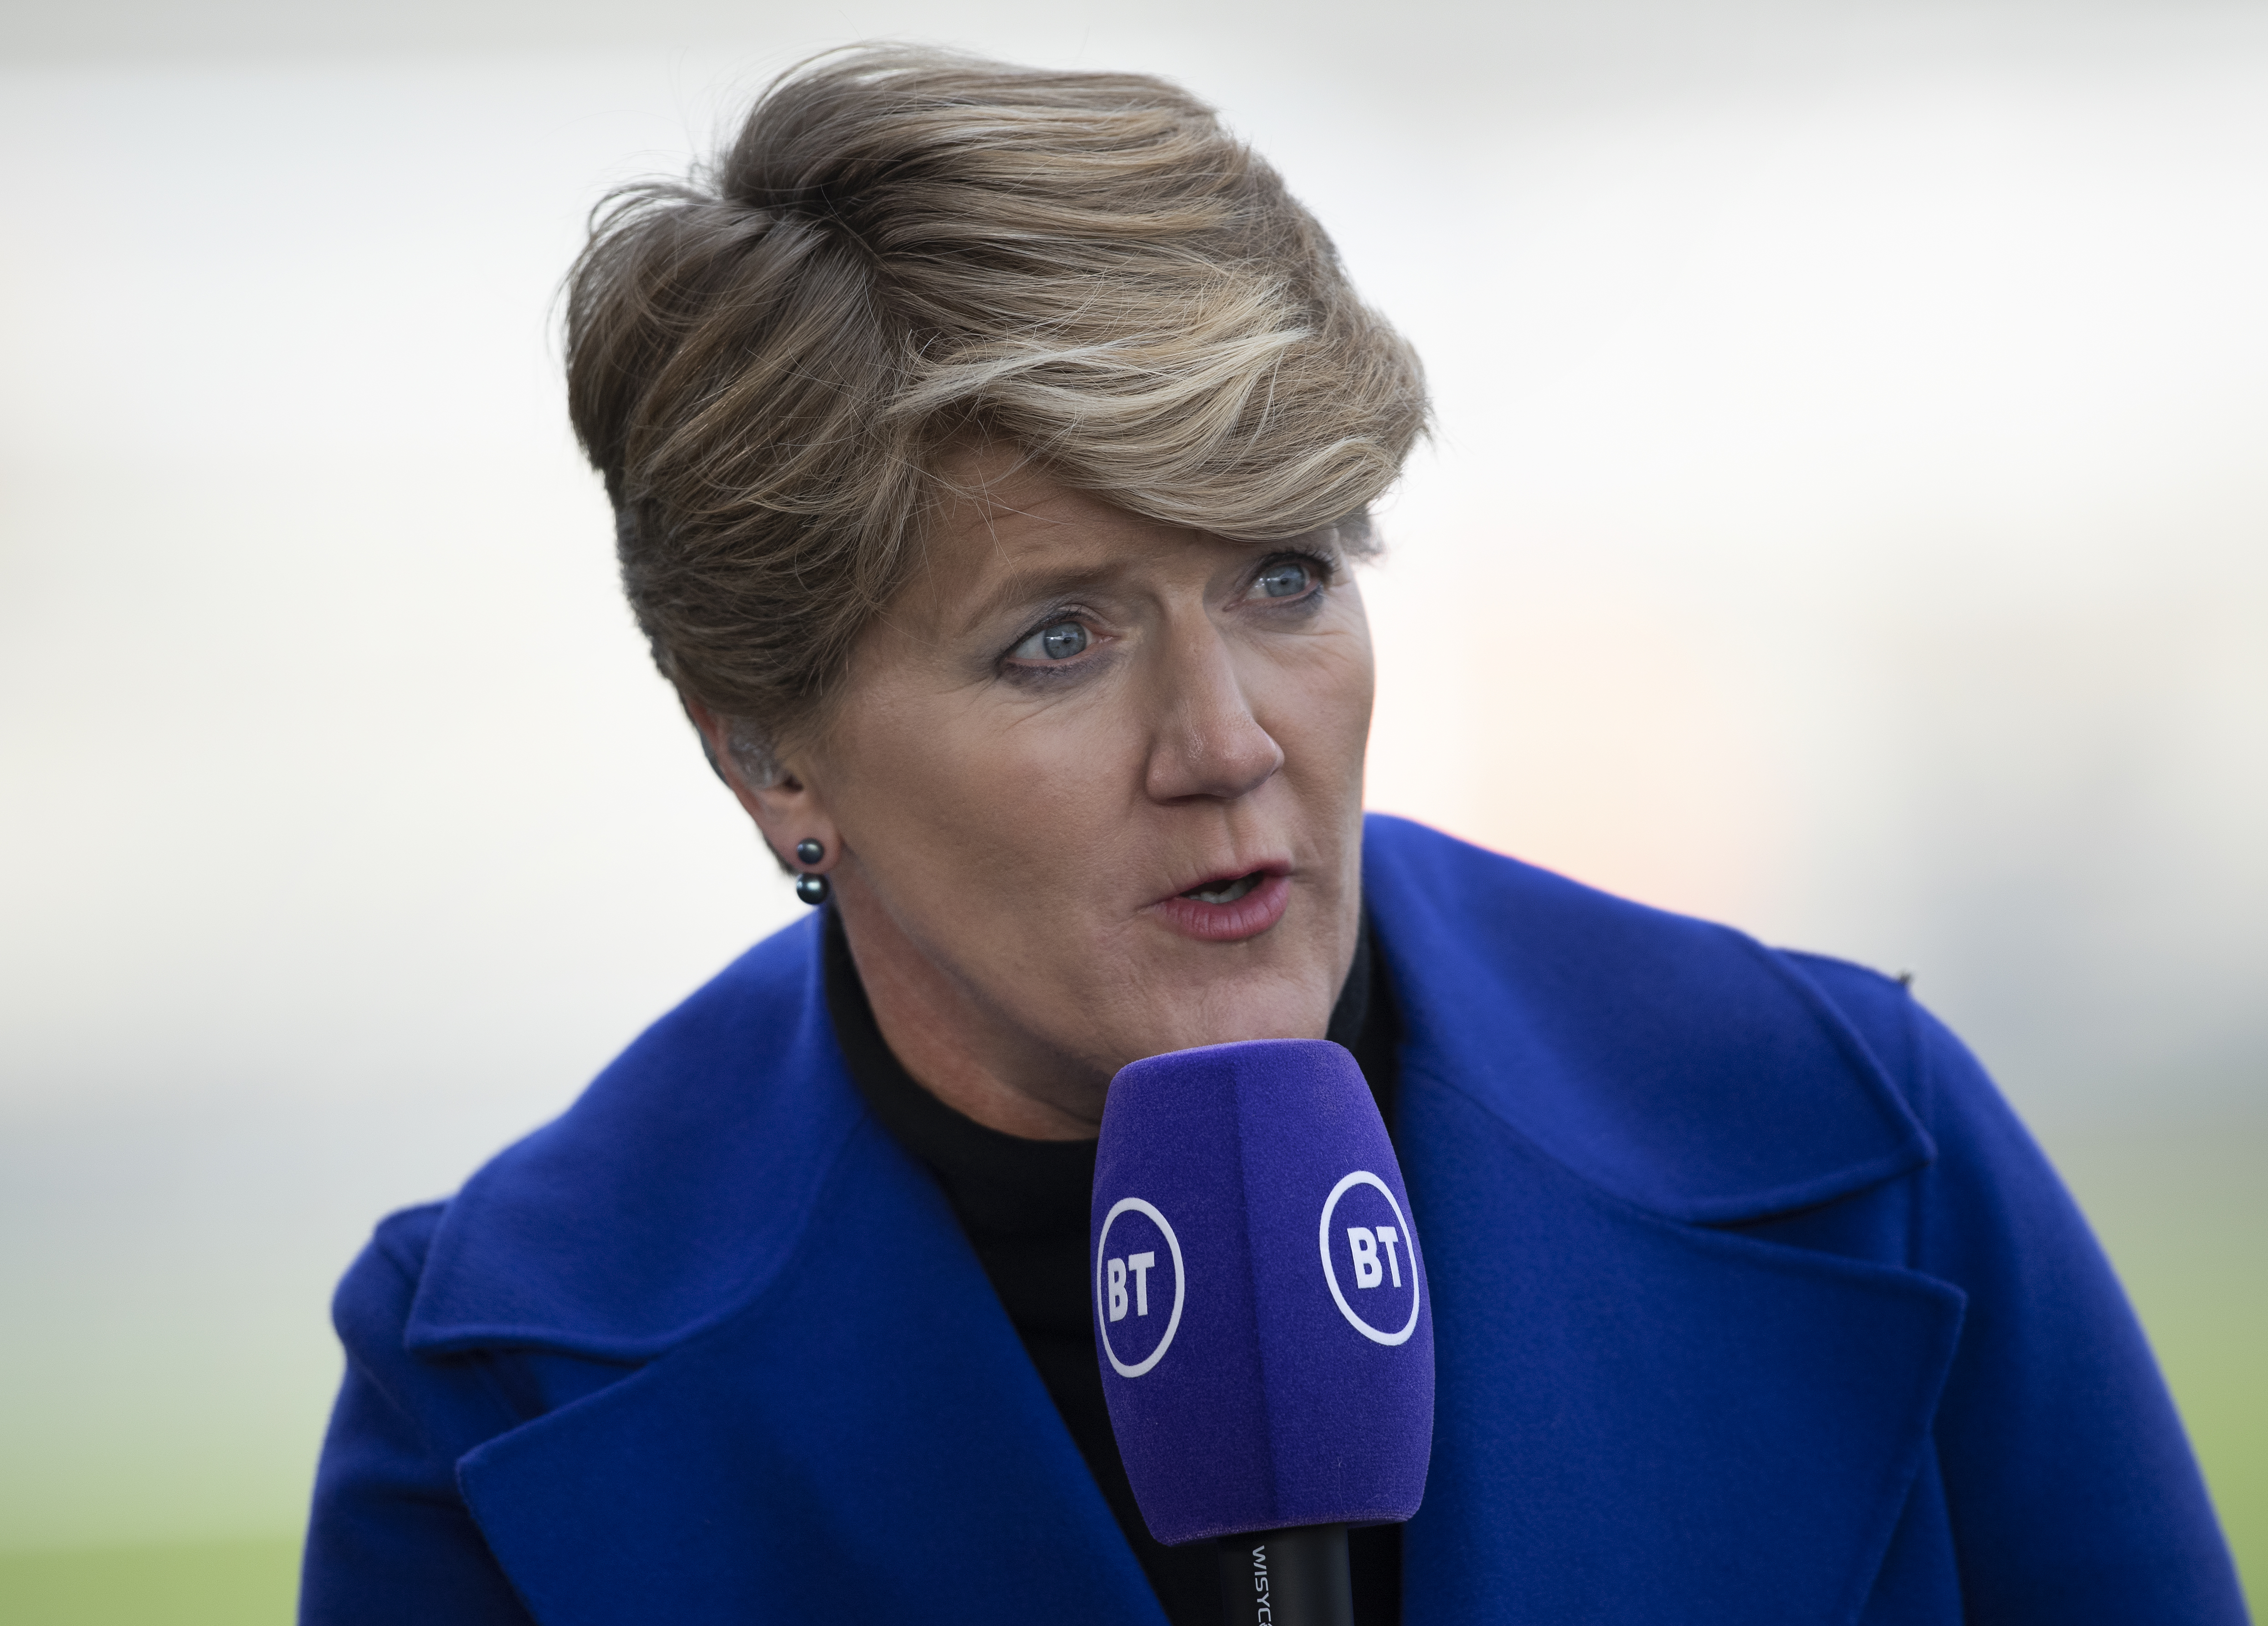 MANCHESTER, ENGLAND - FEBRUARY 23: BT Sport Television presenter Clare Balding before the Barclays FA Women's Super League match between Manchester City and Chelsea at The Academy Stadium on February 23, 2020 in Manchester, United Kingdom. (Photo by Visionhaus)